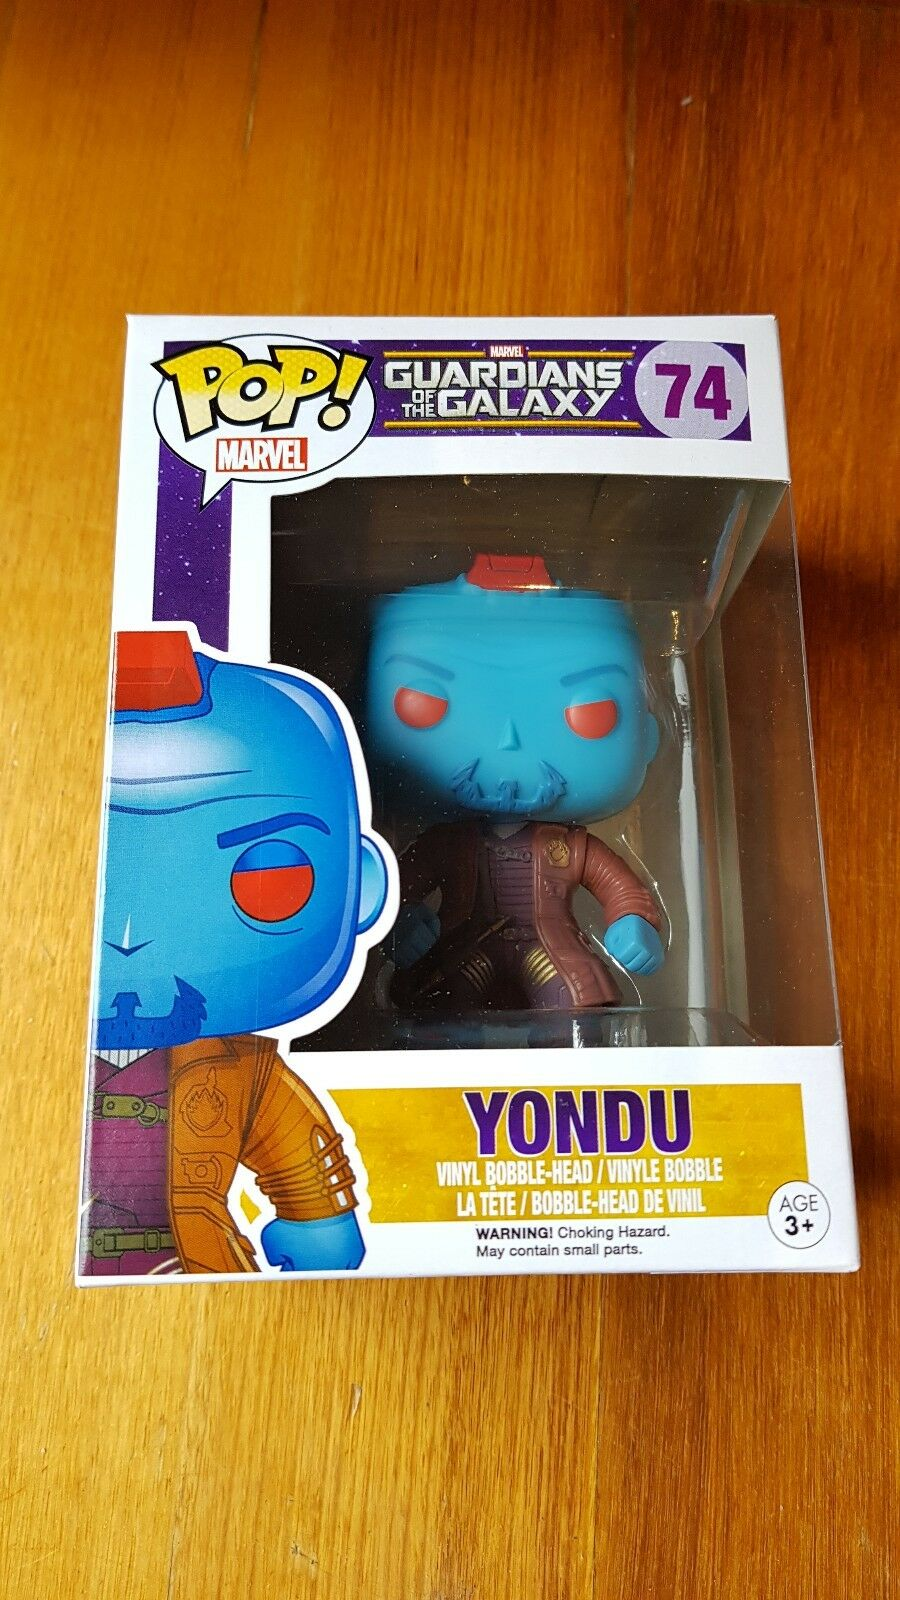 RARE VAULTED FUNKO POP VINYL GUARDIANS OF THE GALAXY YONDU  74 WITH ProssoECTION